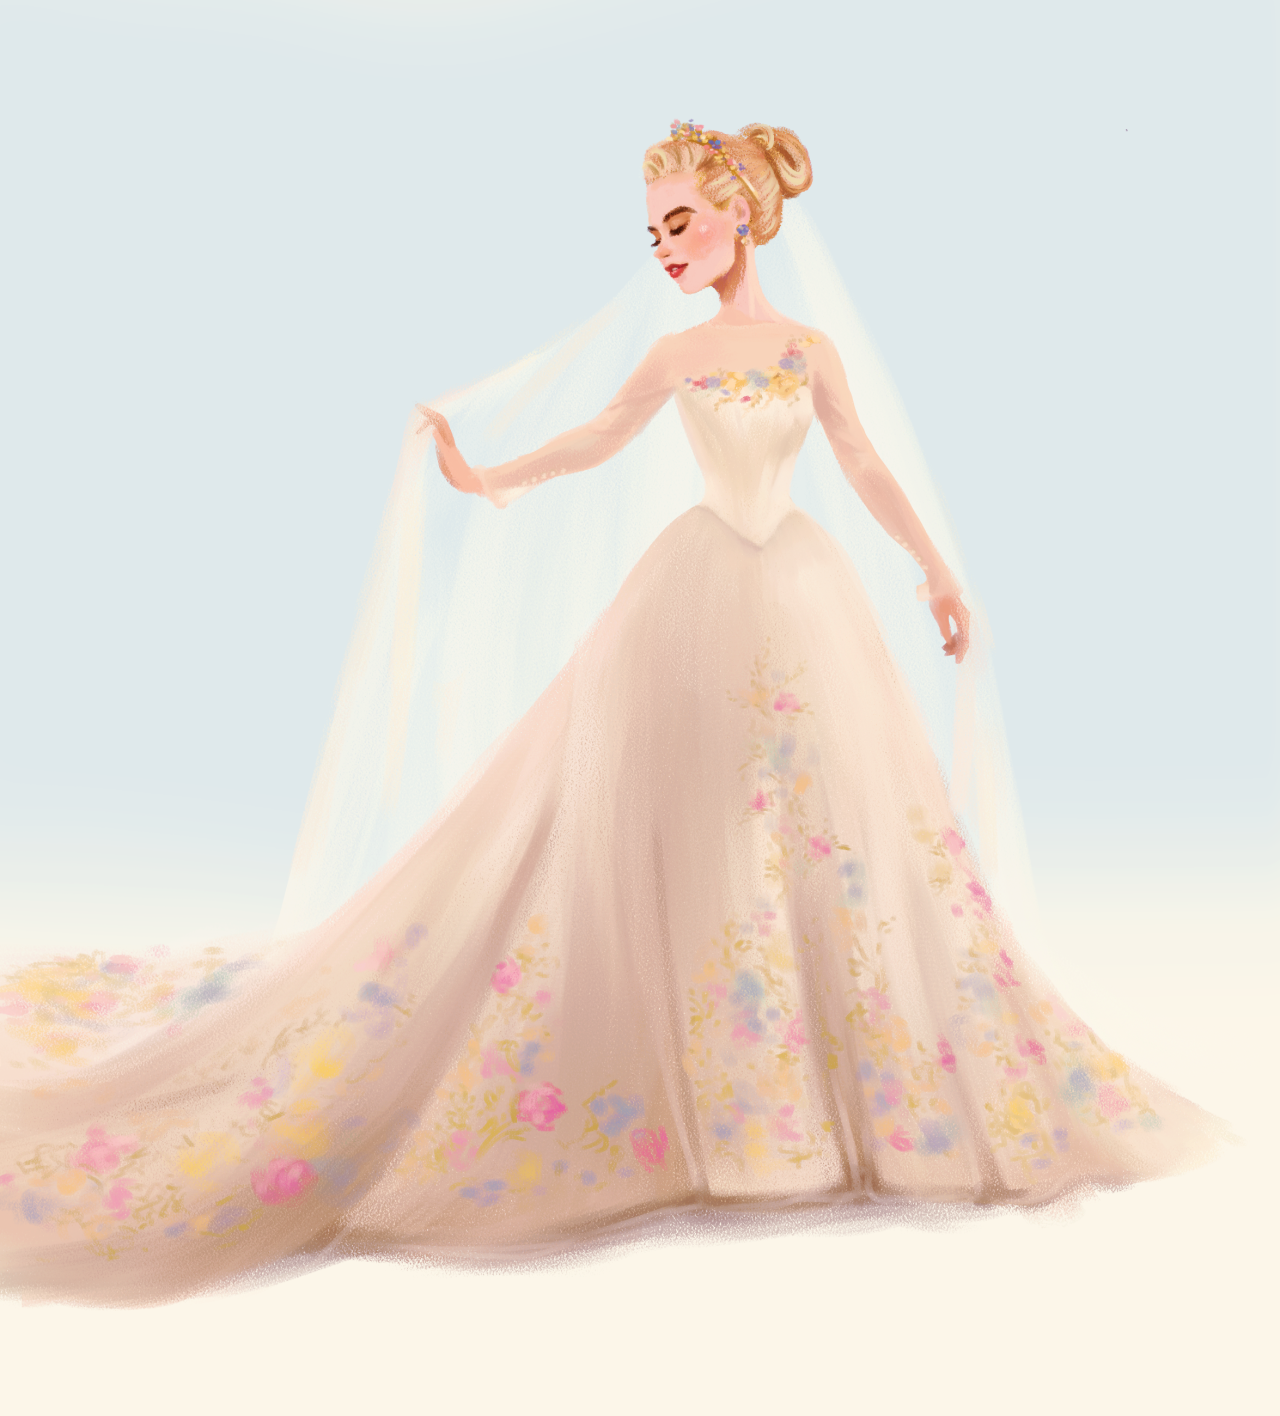 Cinderella s wedding dressi had to draw ella s wedding for Cinderella wedding dress up